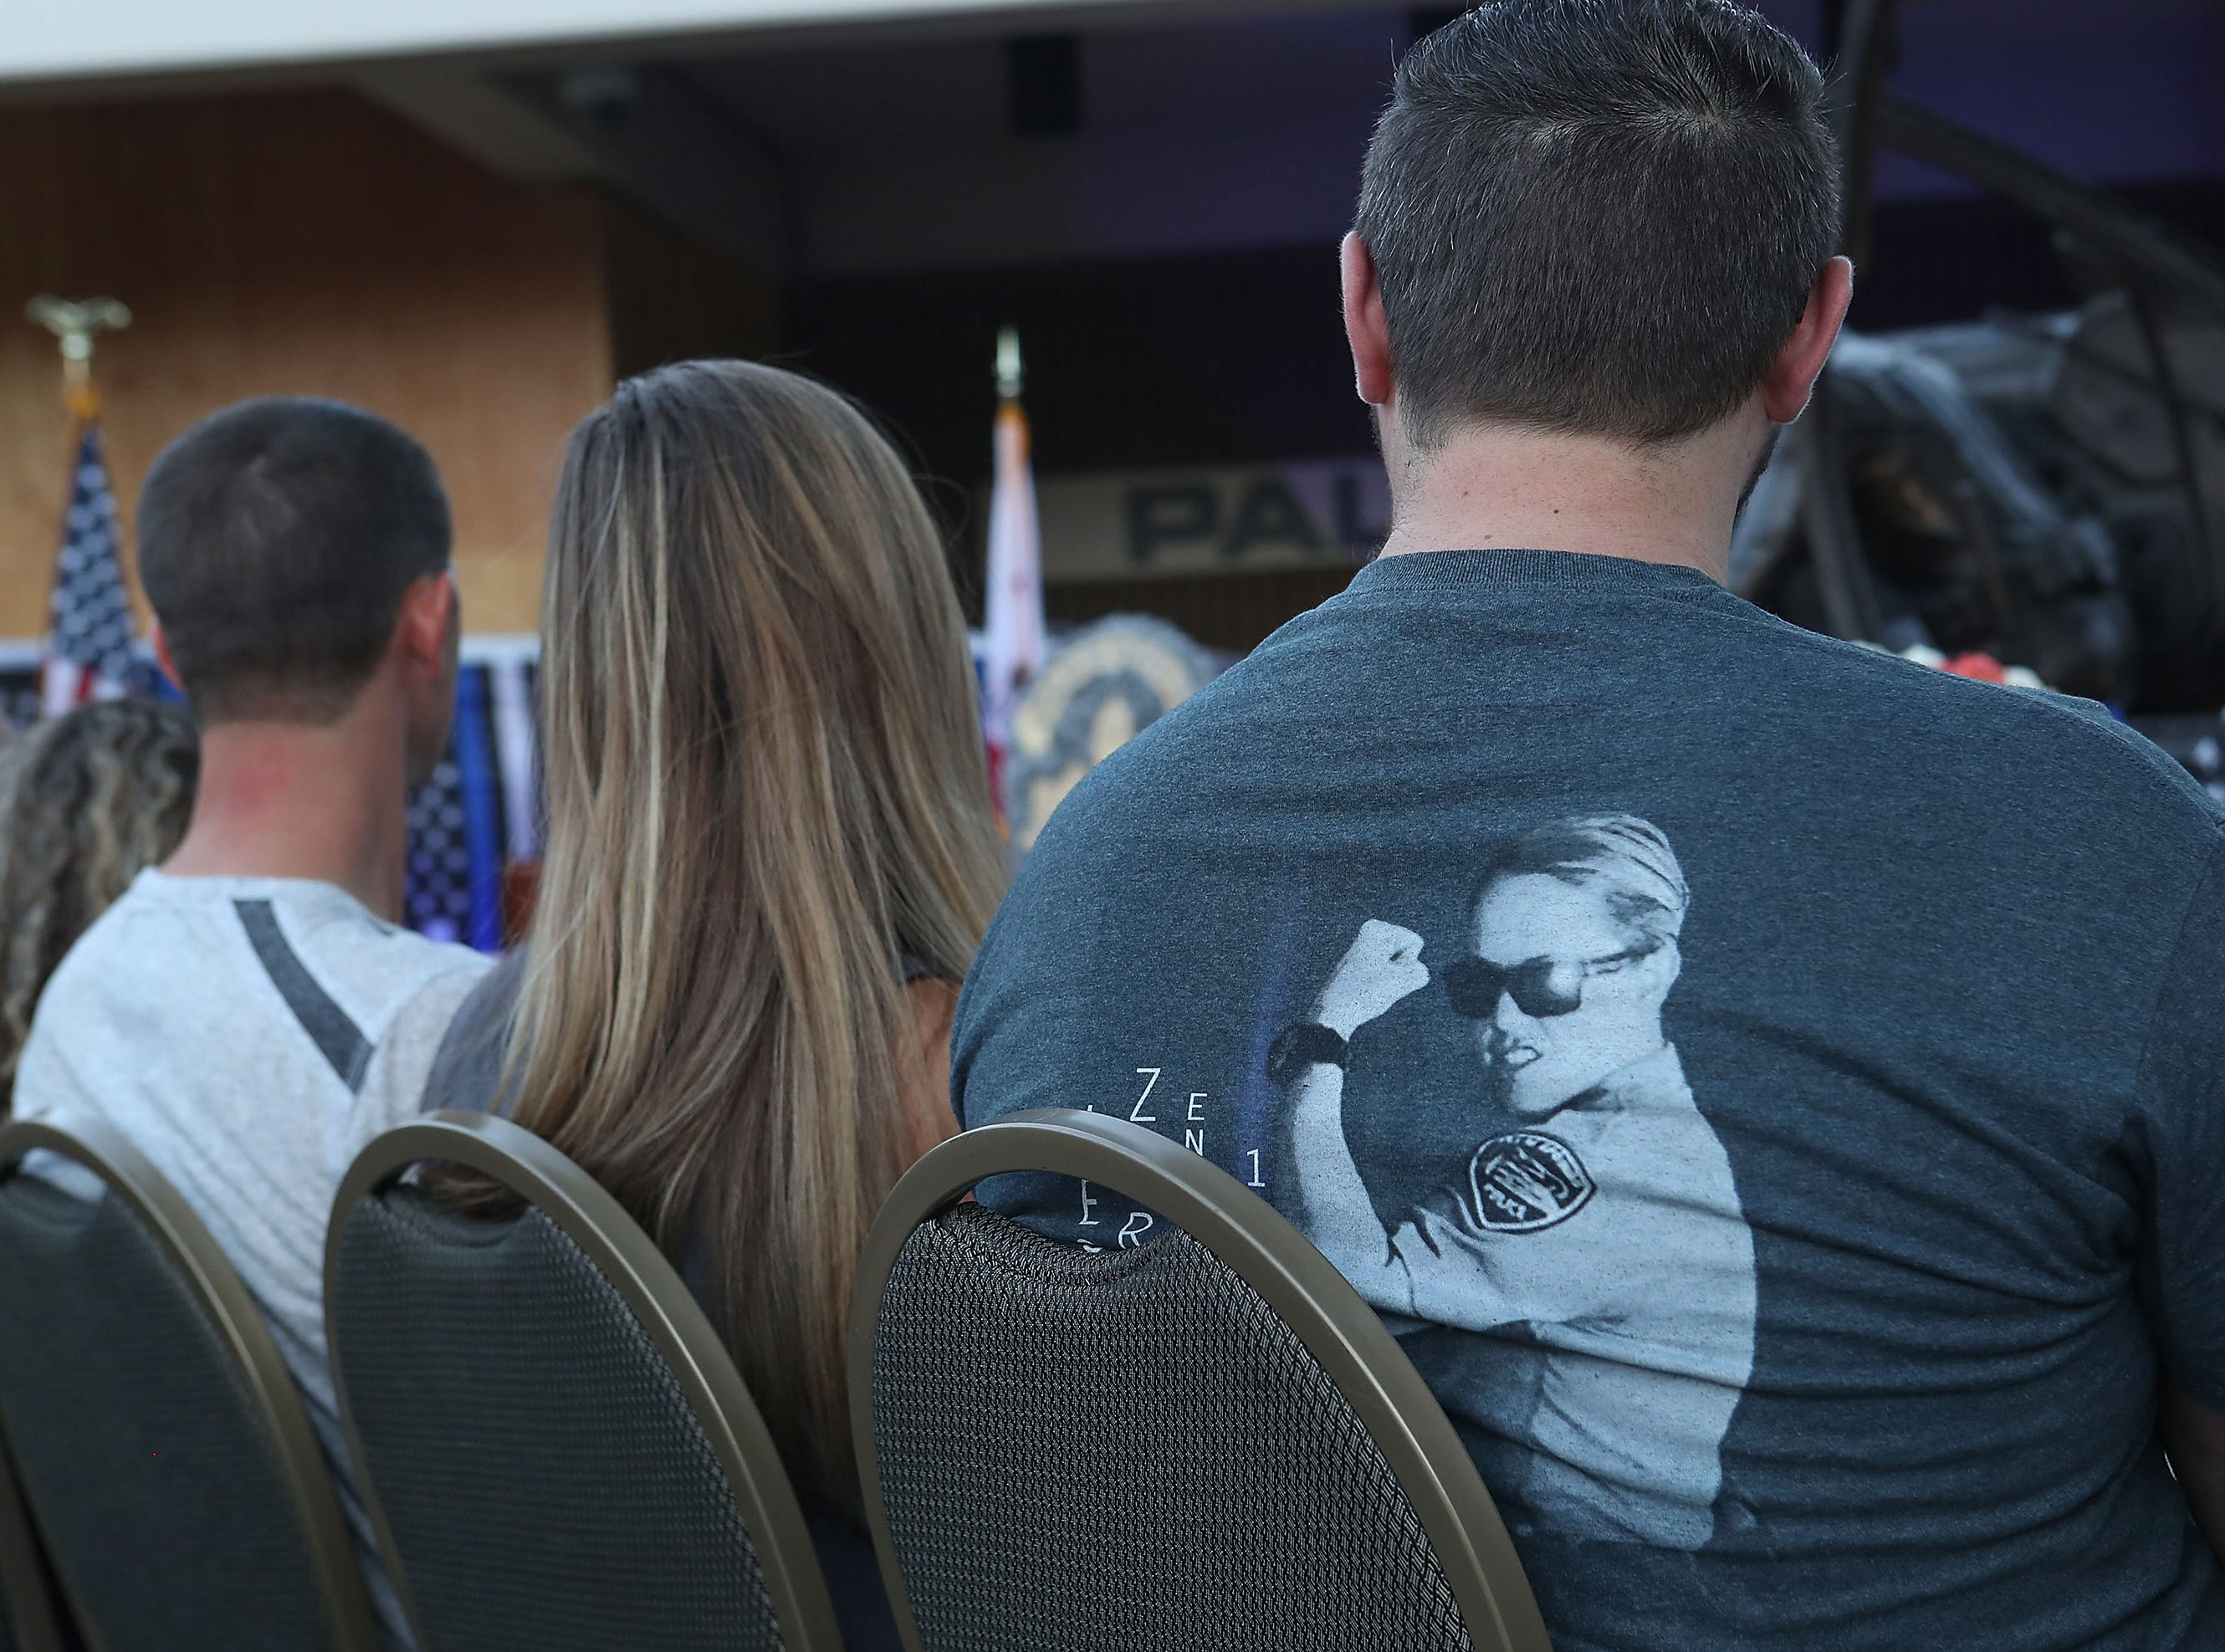 A t-shirt with an image of Lesley Zerebny is worn by a family member during a vigil at the Palm Springs Police Department commemorating the two-year anniversary of her passing, October 8, 2018.